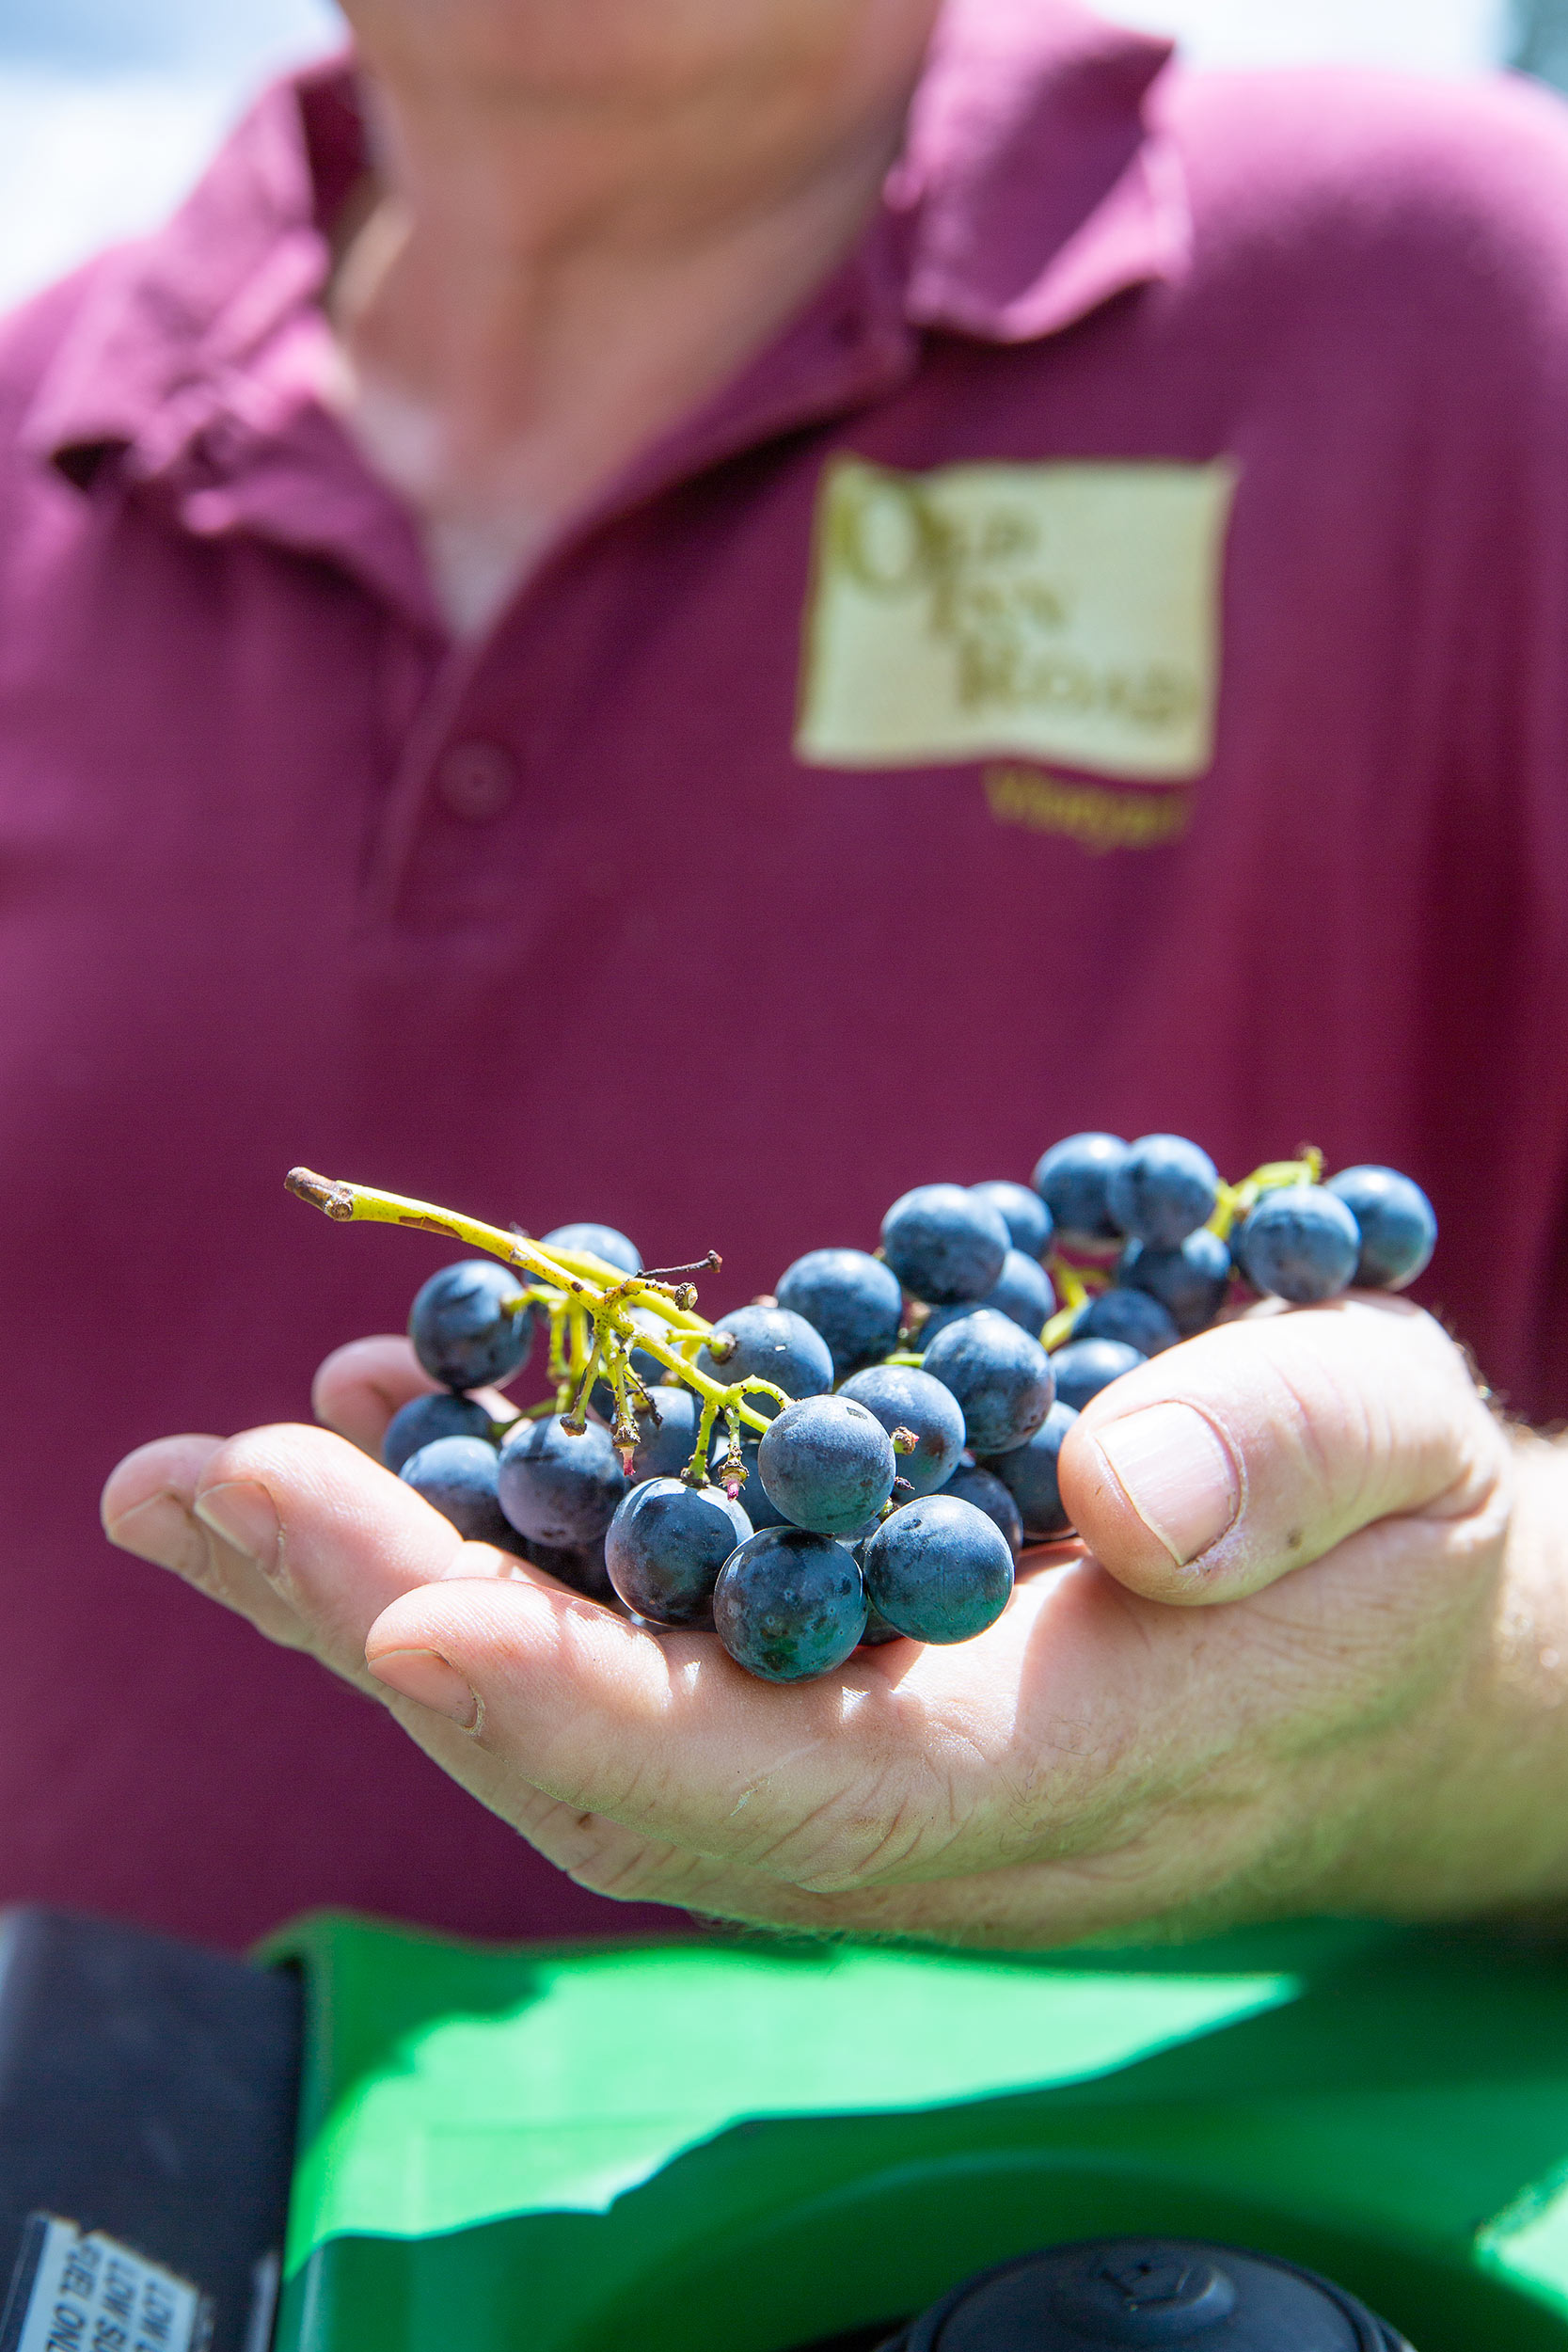 glft-old-inn-road-local-hand-picked-grapes-wine(1).jpg